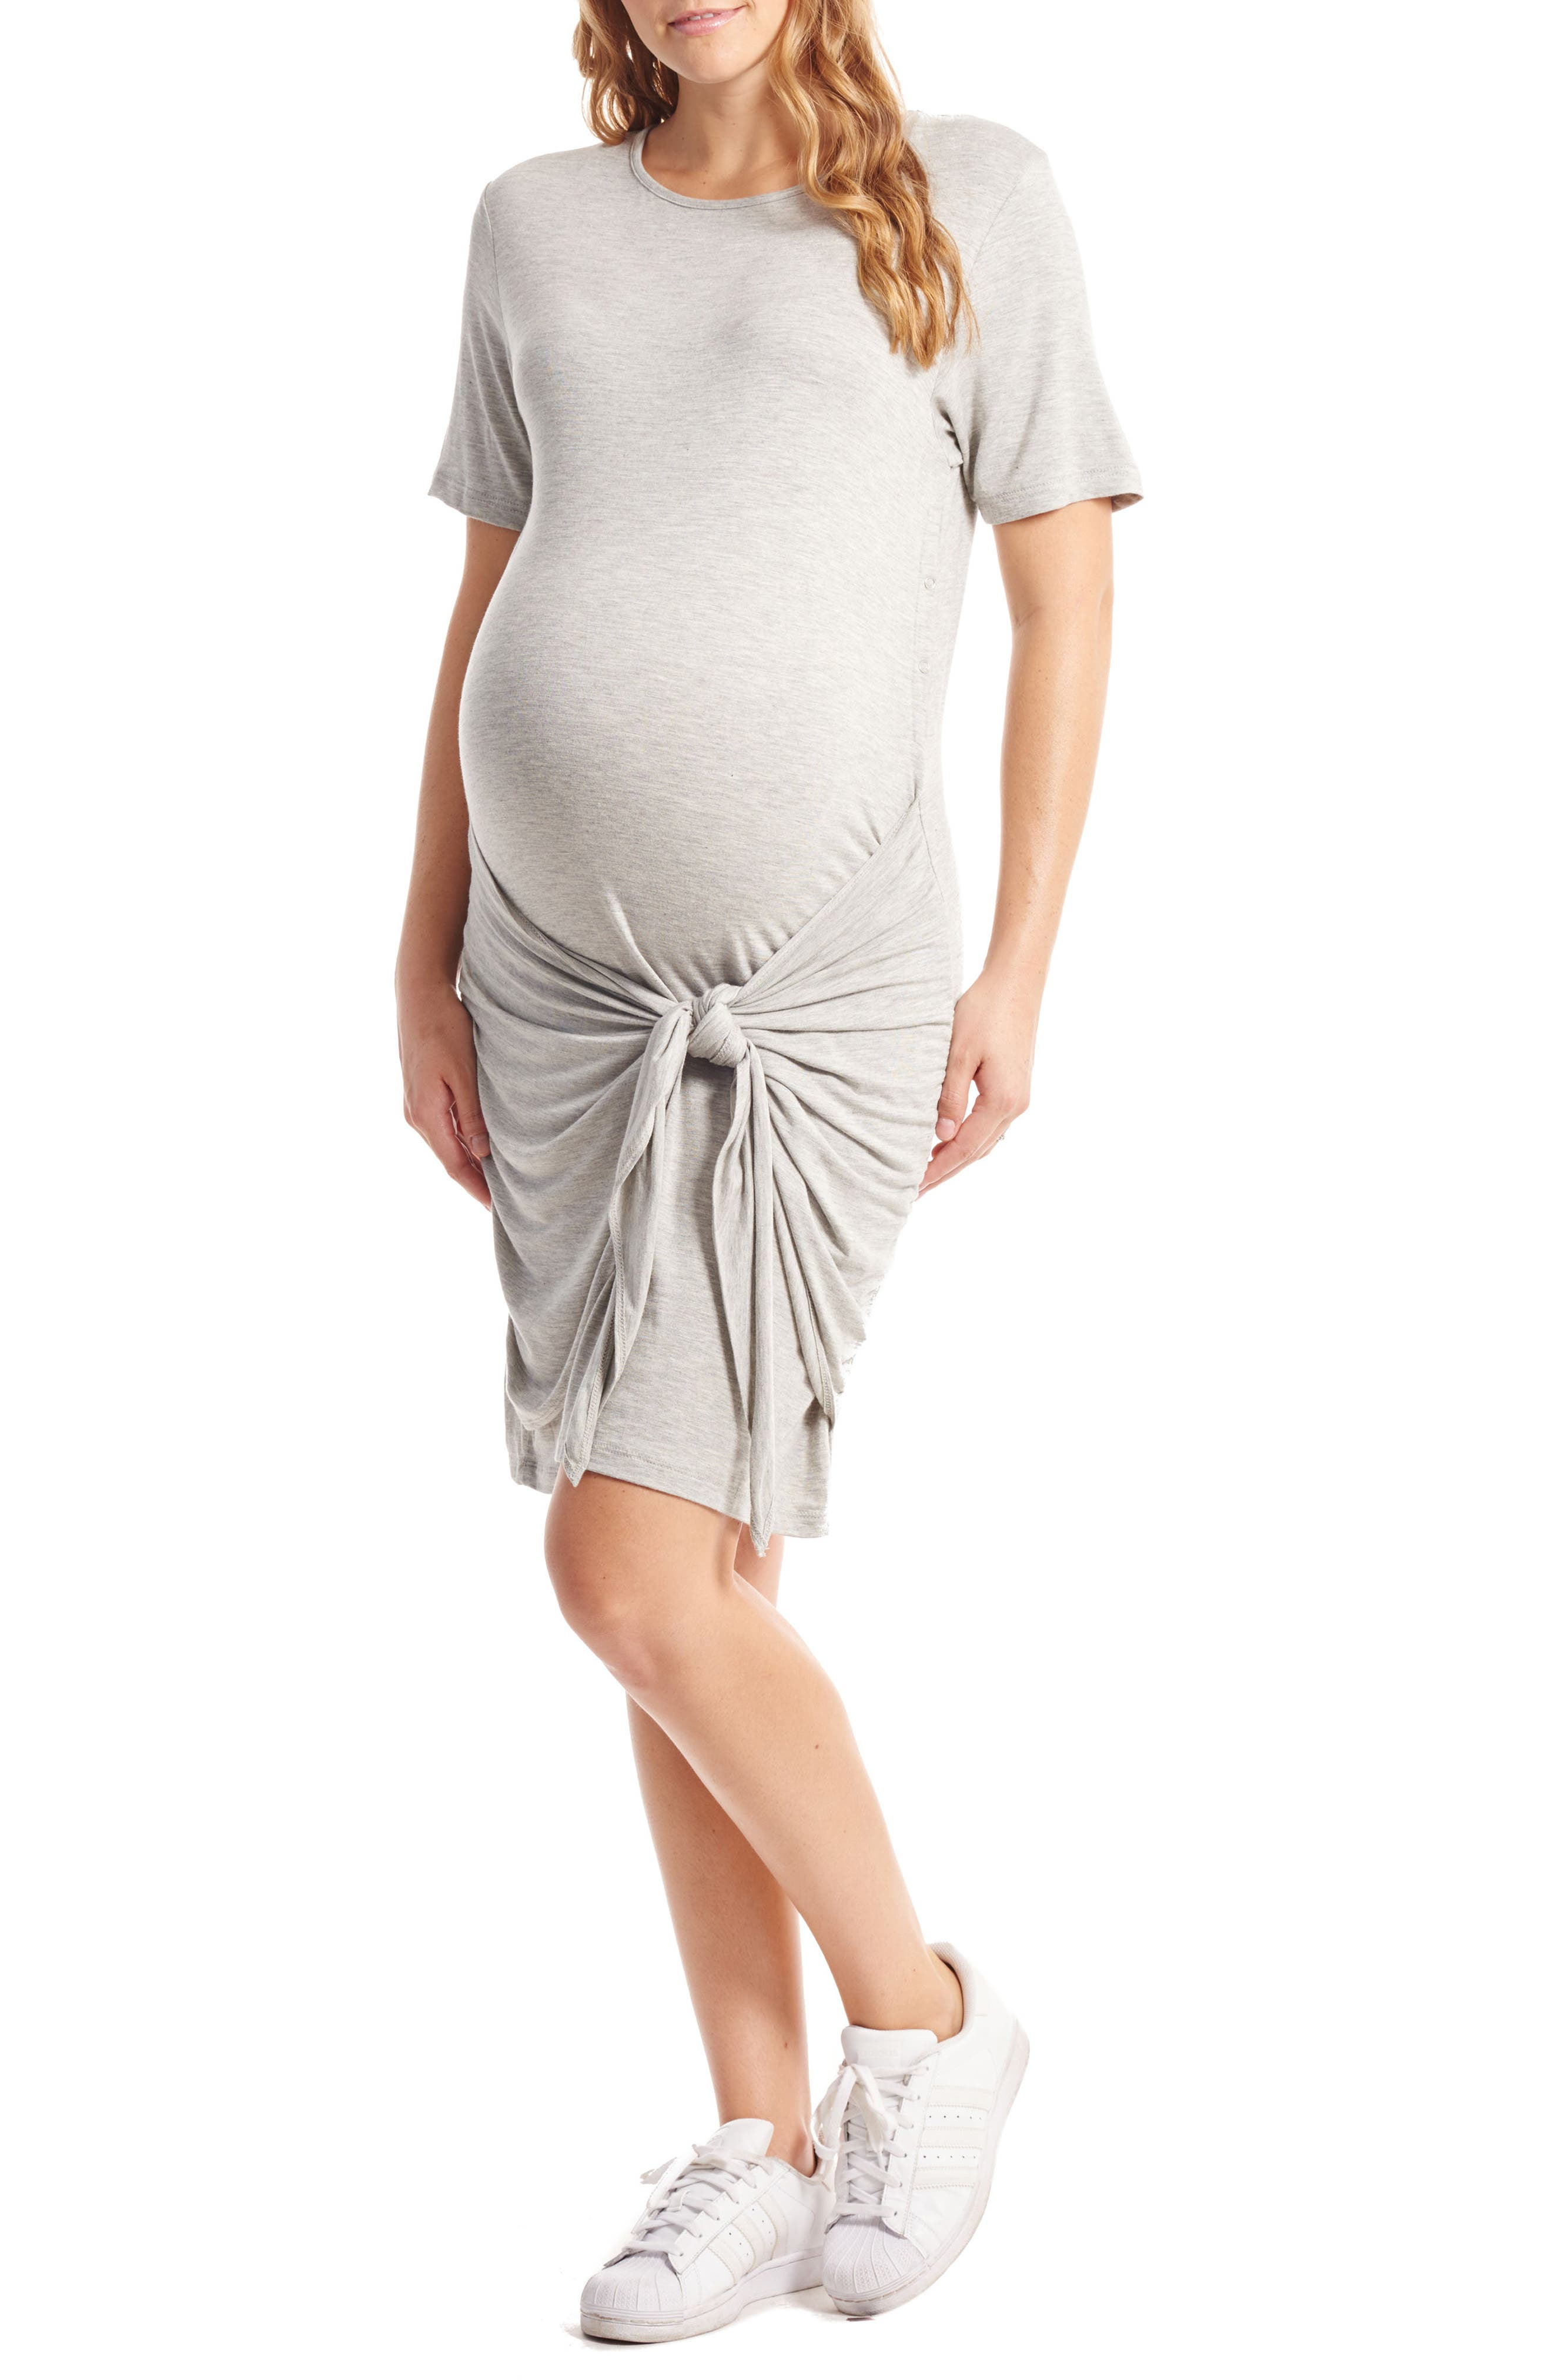 Alternate Image 1 Selected - Everly Grey Maya Maternity/Nursing Tie Waist Dress